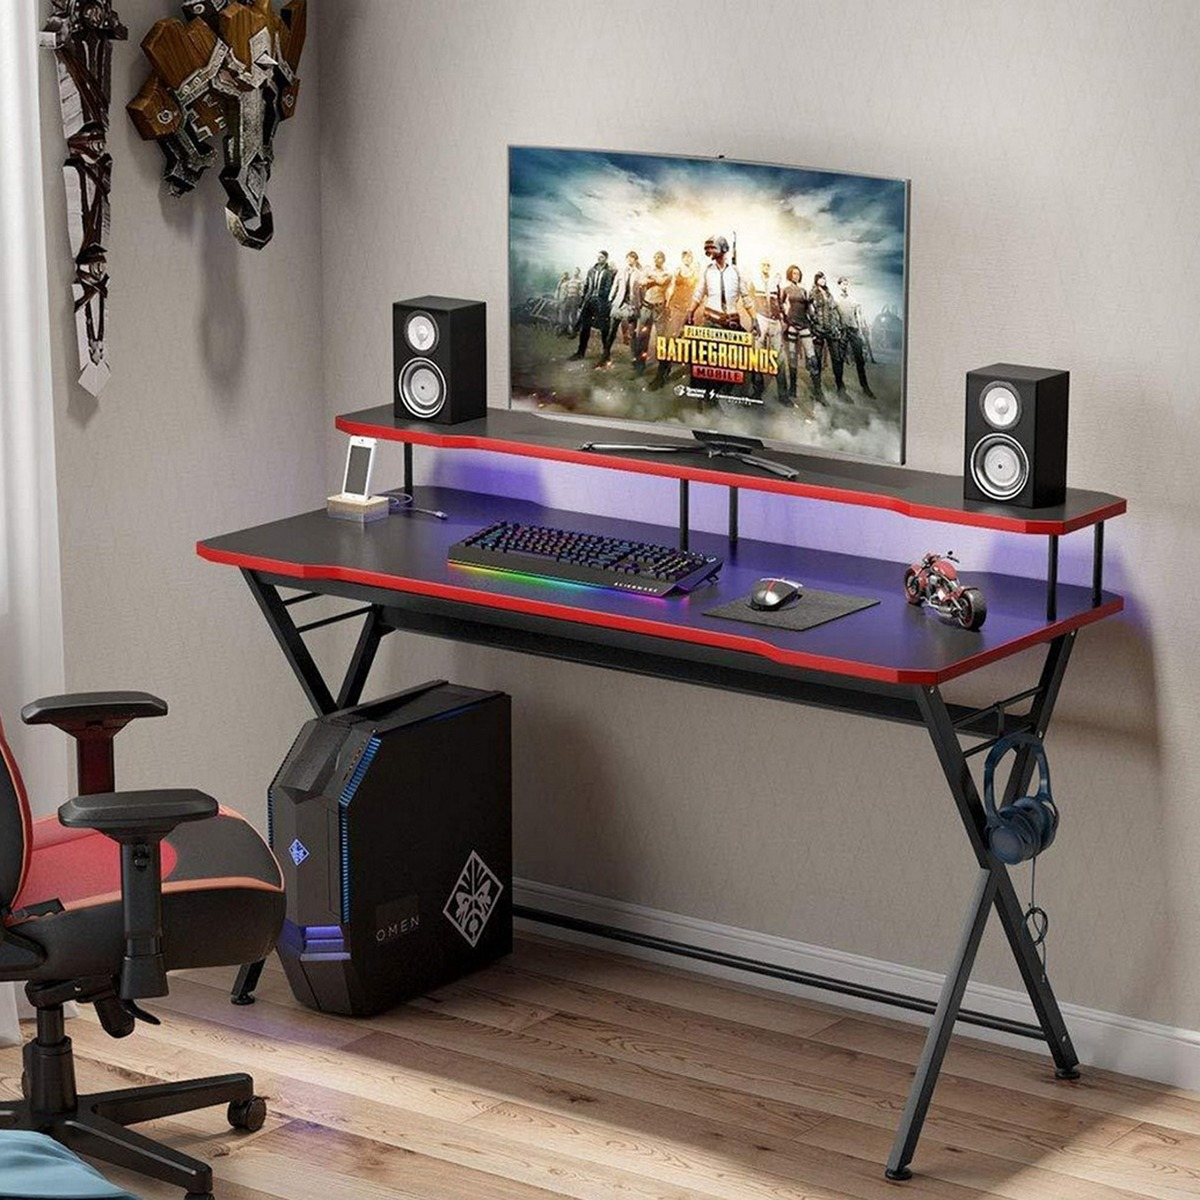 58 inch Large Gaming Desk Ergonomic PC Gaming Table Gamer Computer Desk with Monitor Stand and Headphone Holder